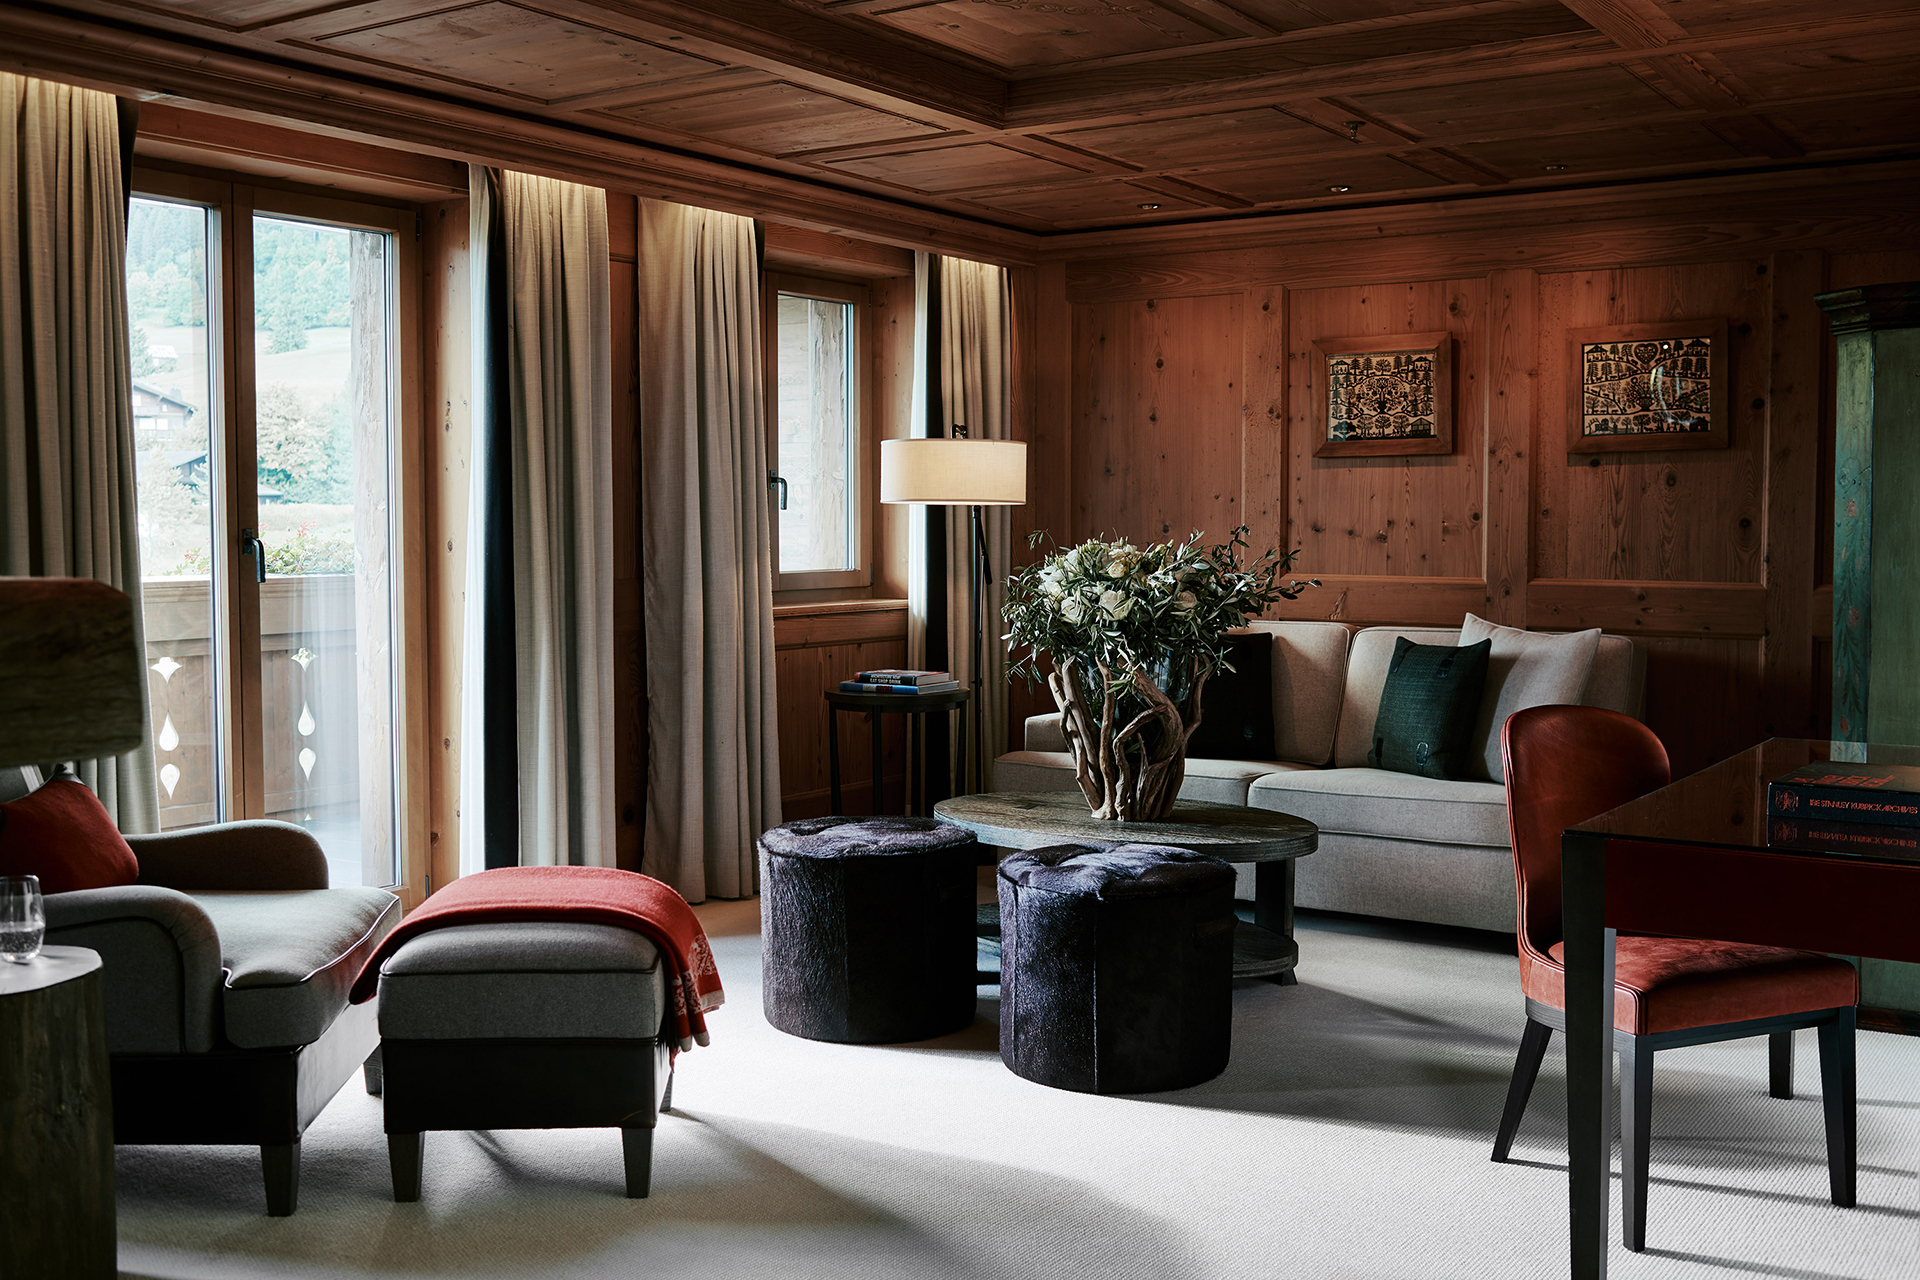 TheAlpinaGstaad_Rooms&Suites_0210_1920.jpg